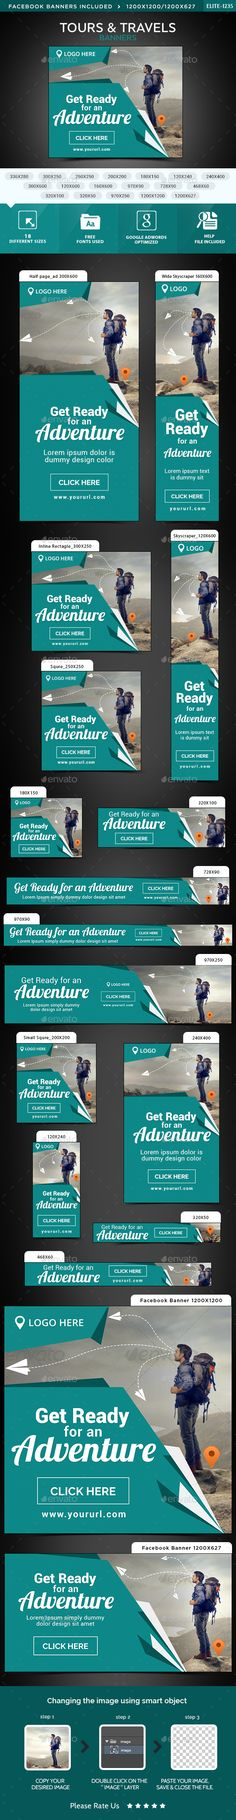 Tours & Travels Web Banners Template PSD. Download here: http://graphicriver.net/item/tours-travels-banners/15101519?ref=ksioks